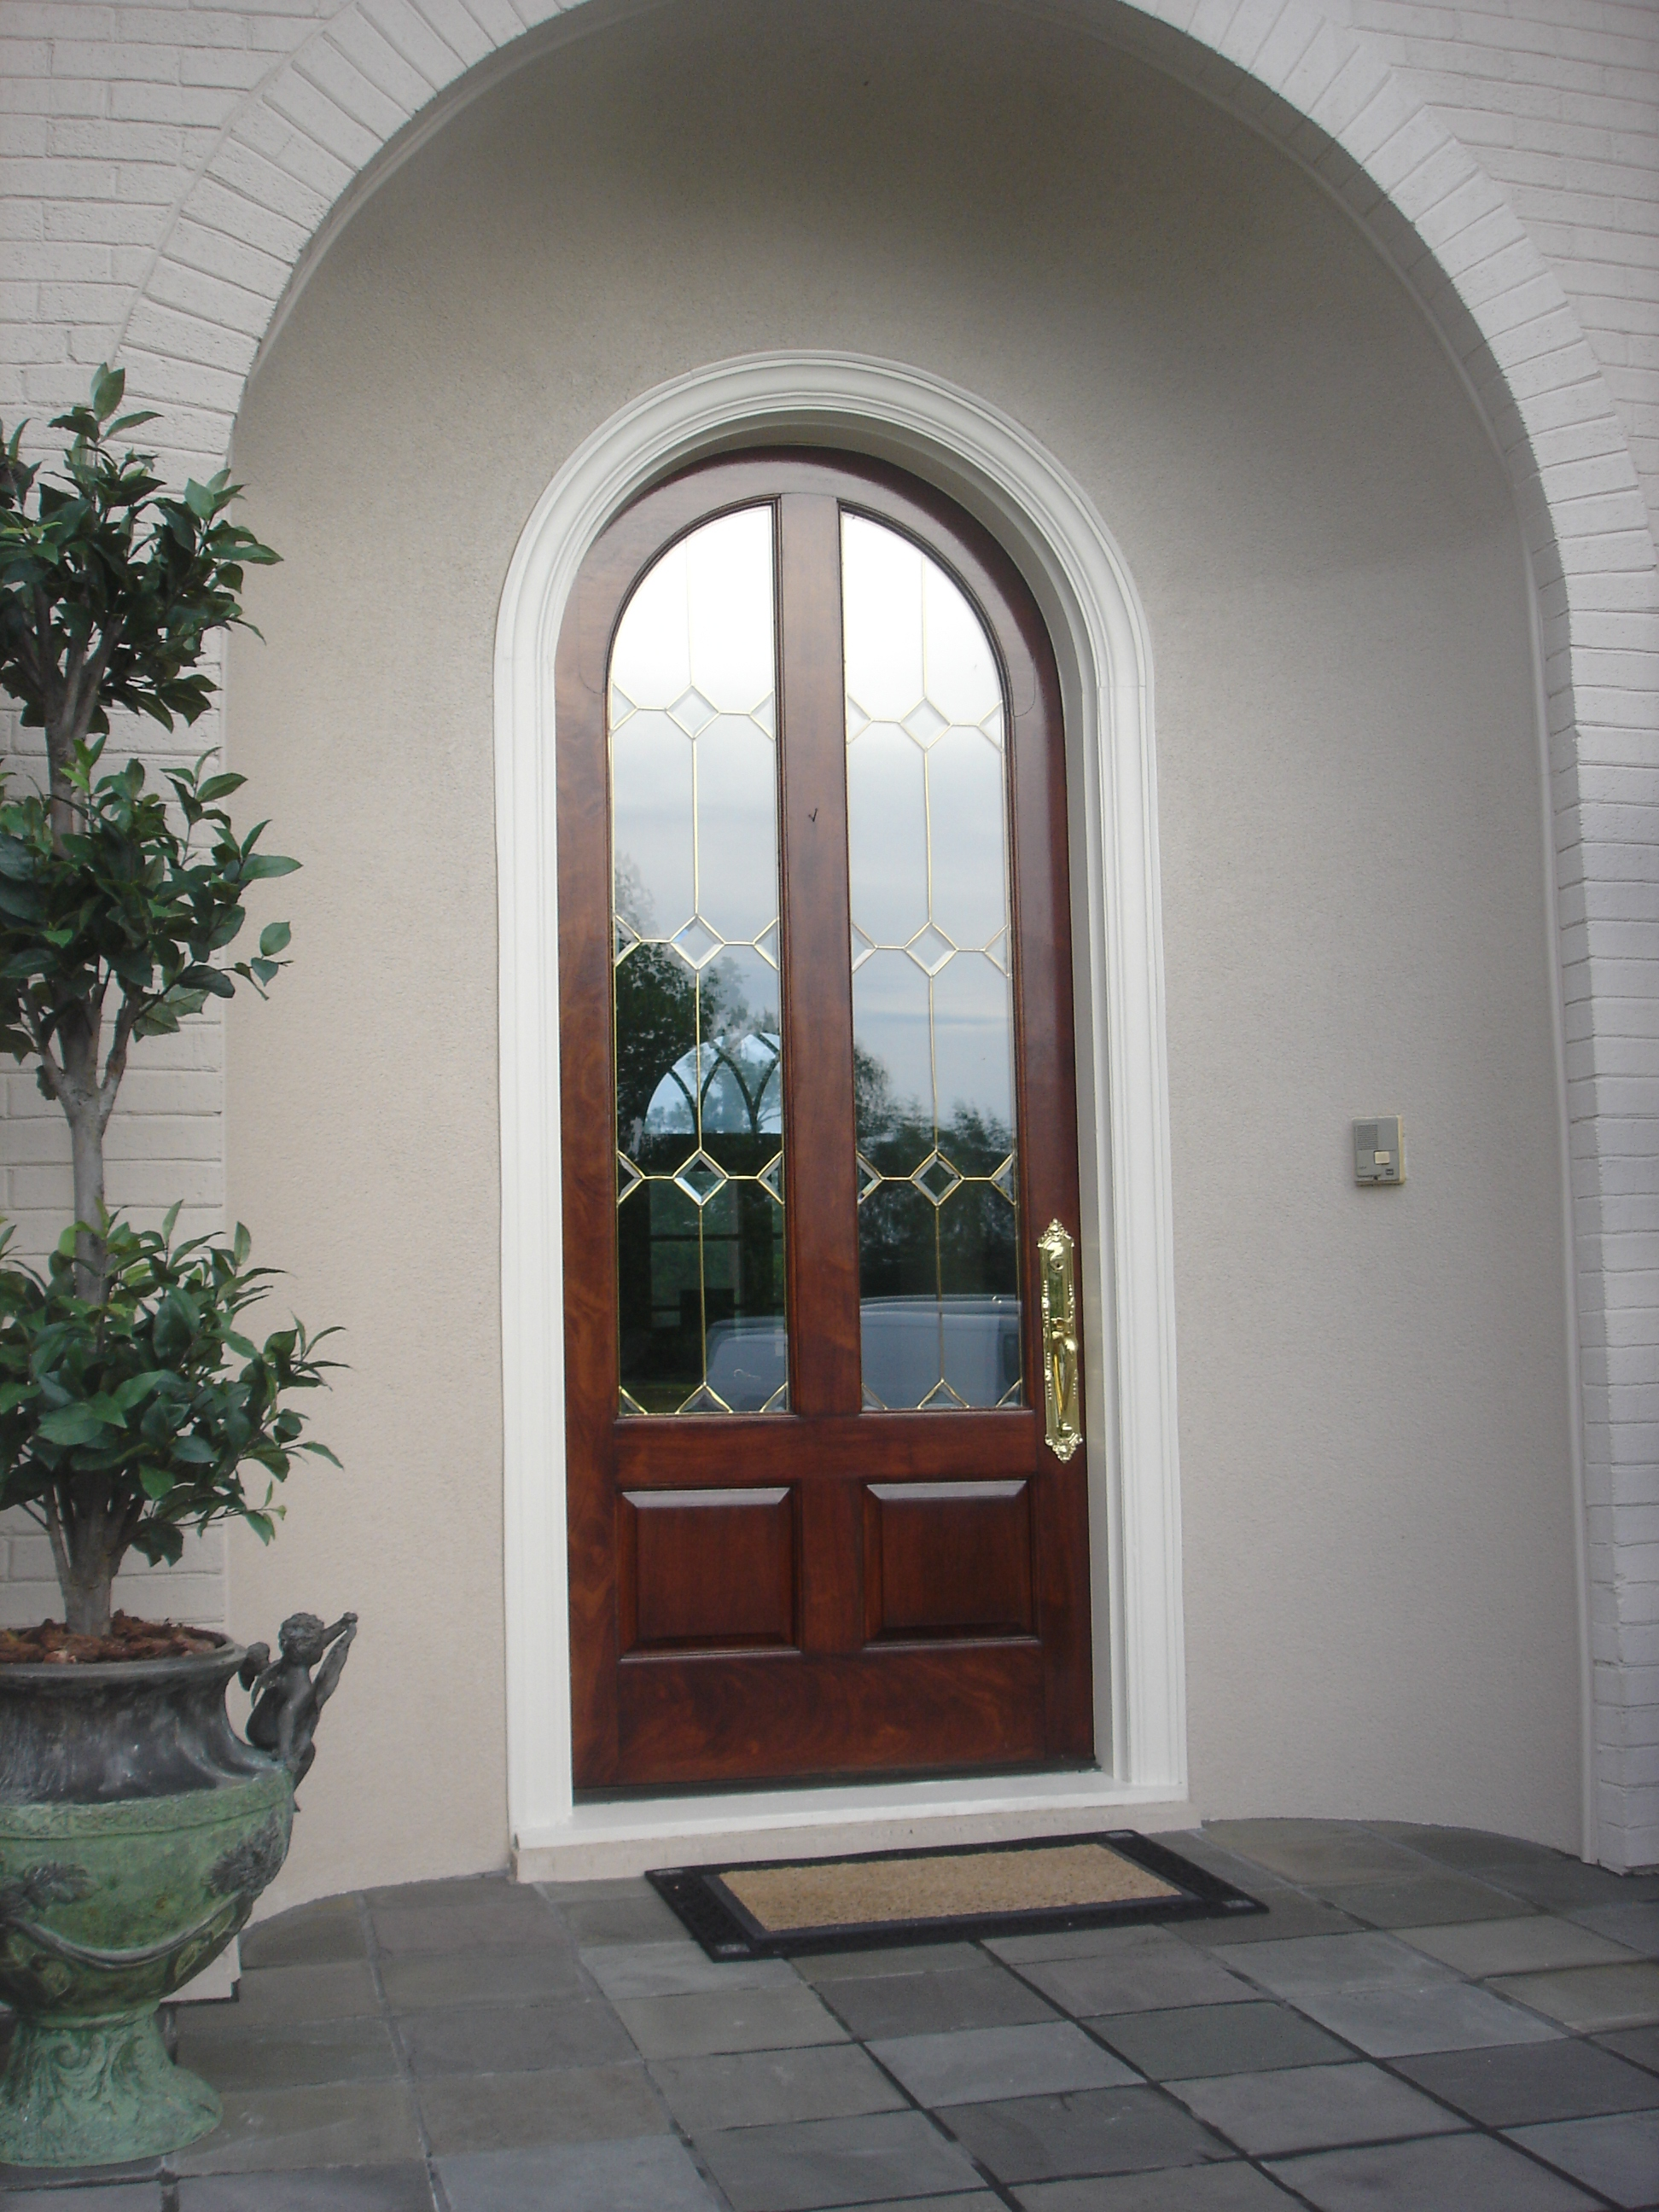 Refinished exterior wood door